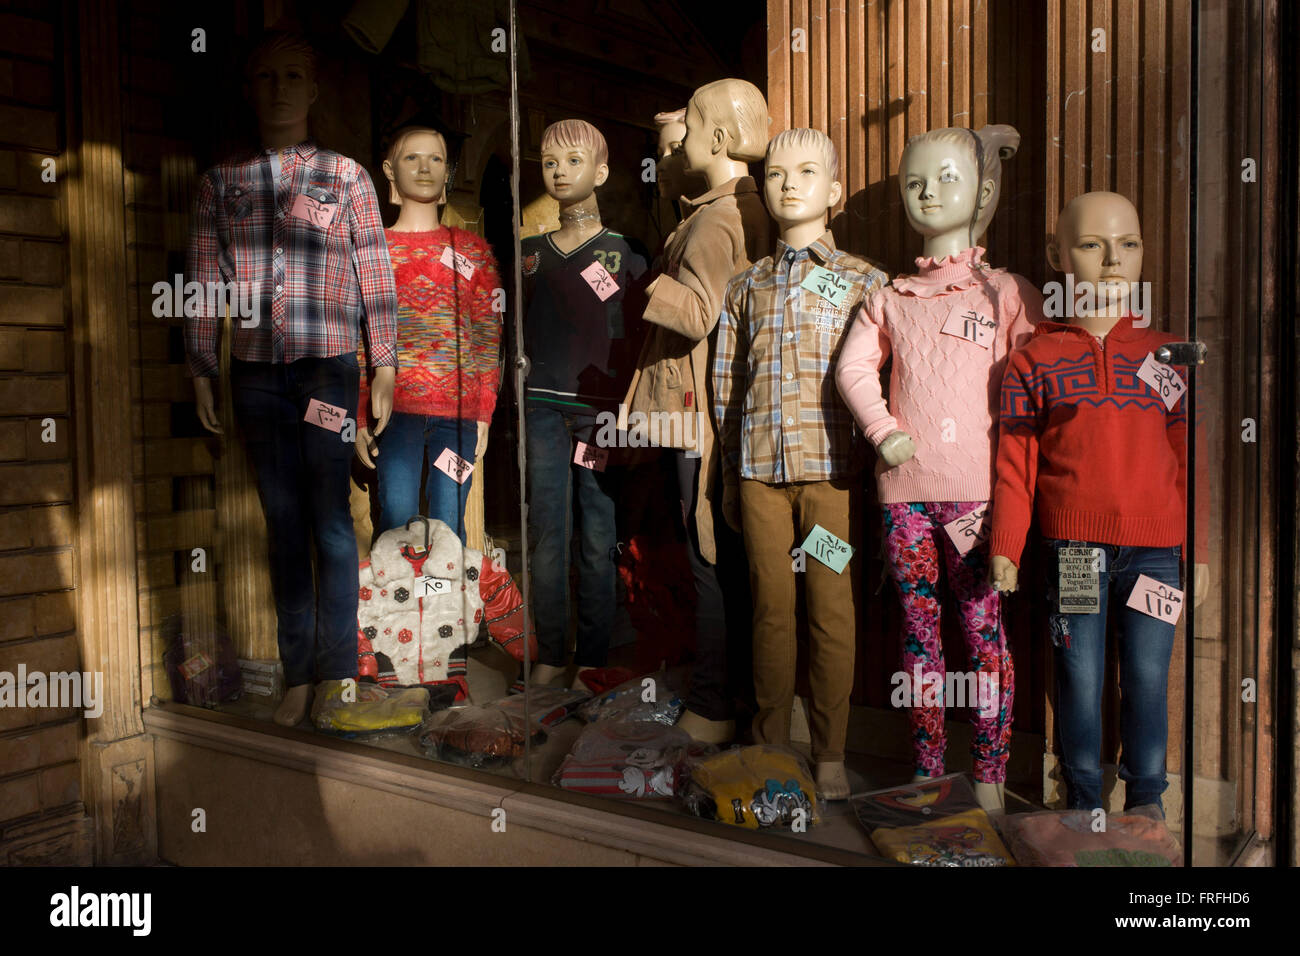 mannequins-in-the-window-of-a-clothing-b